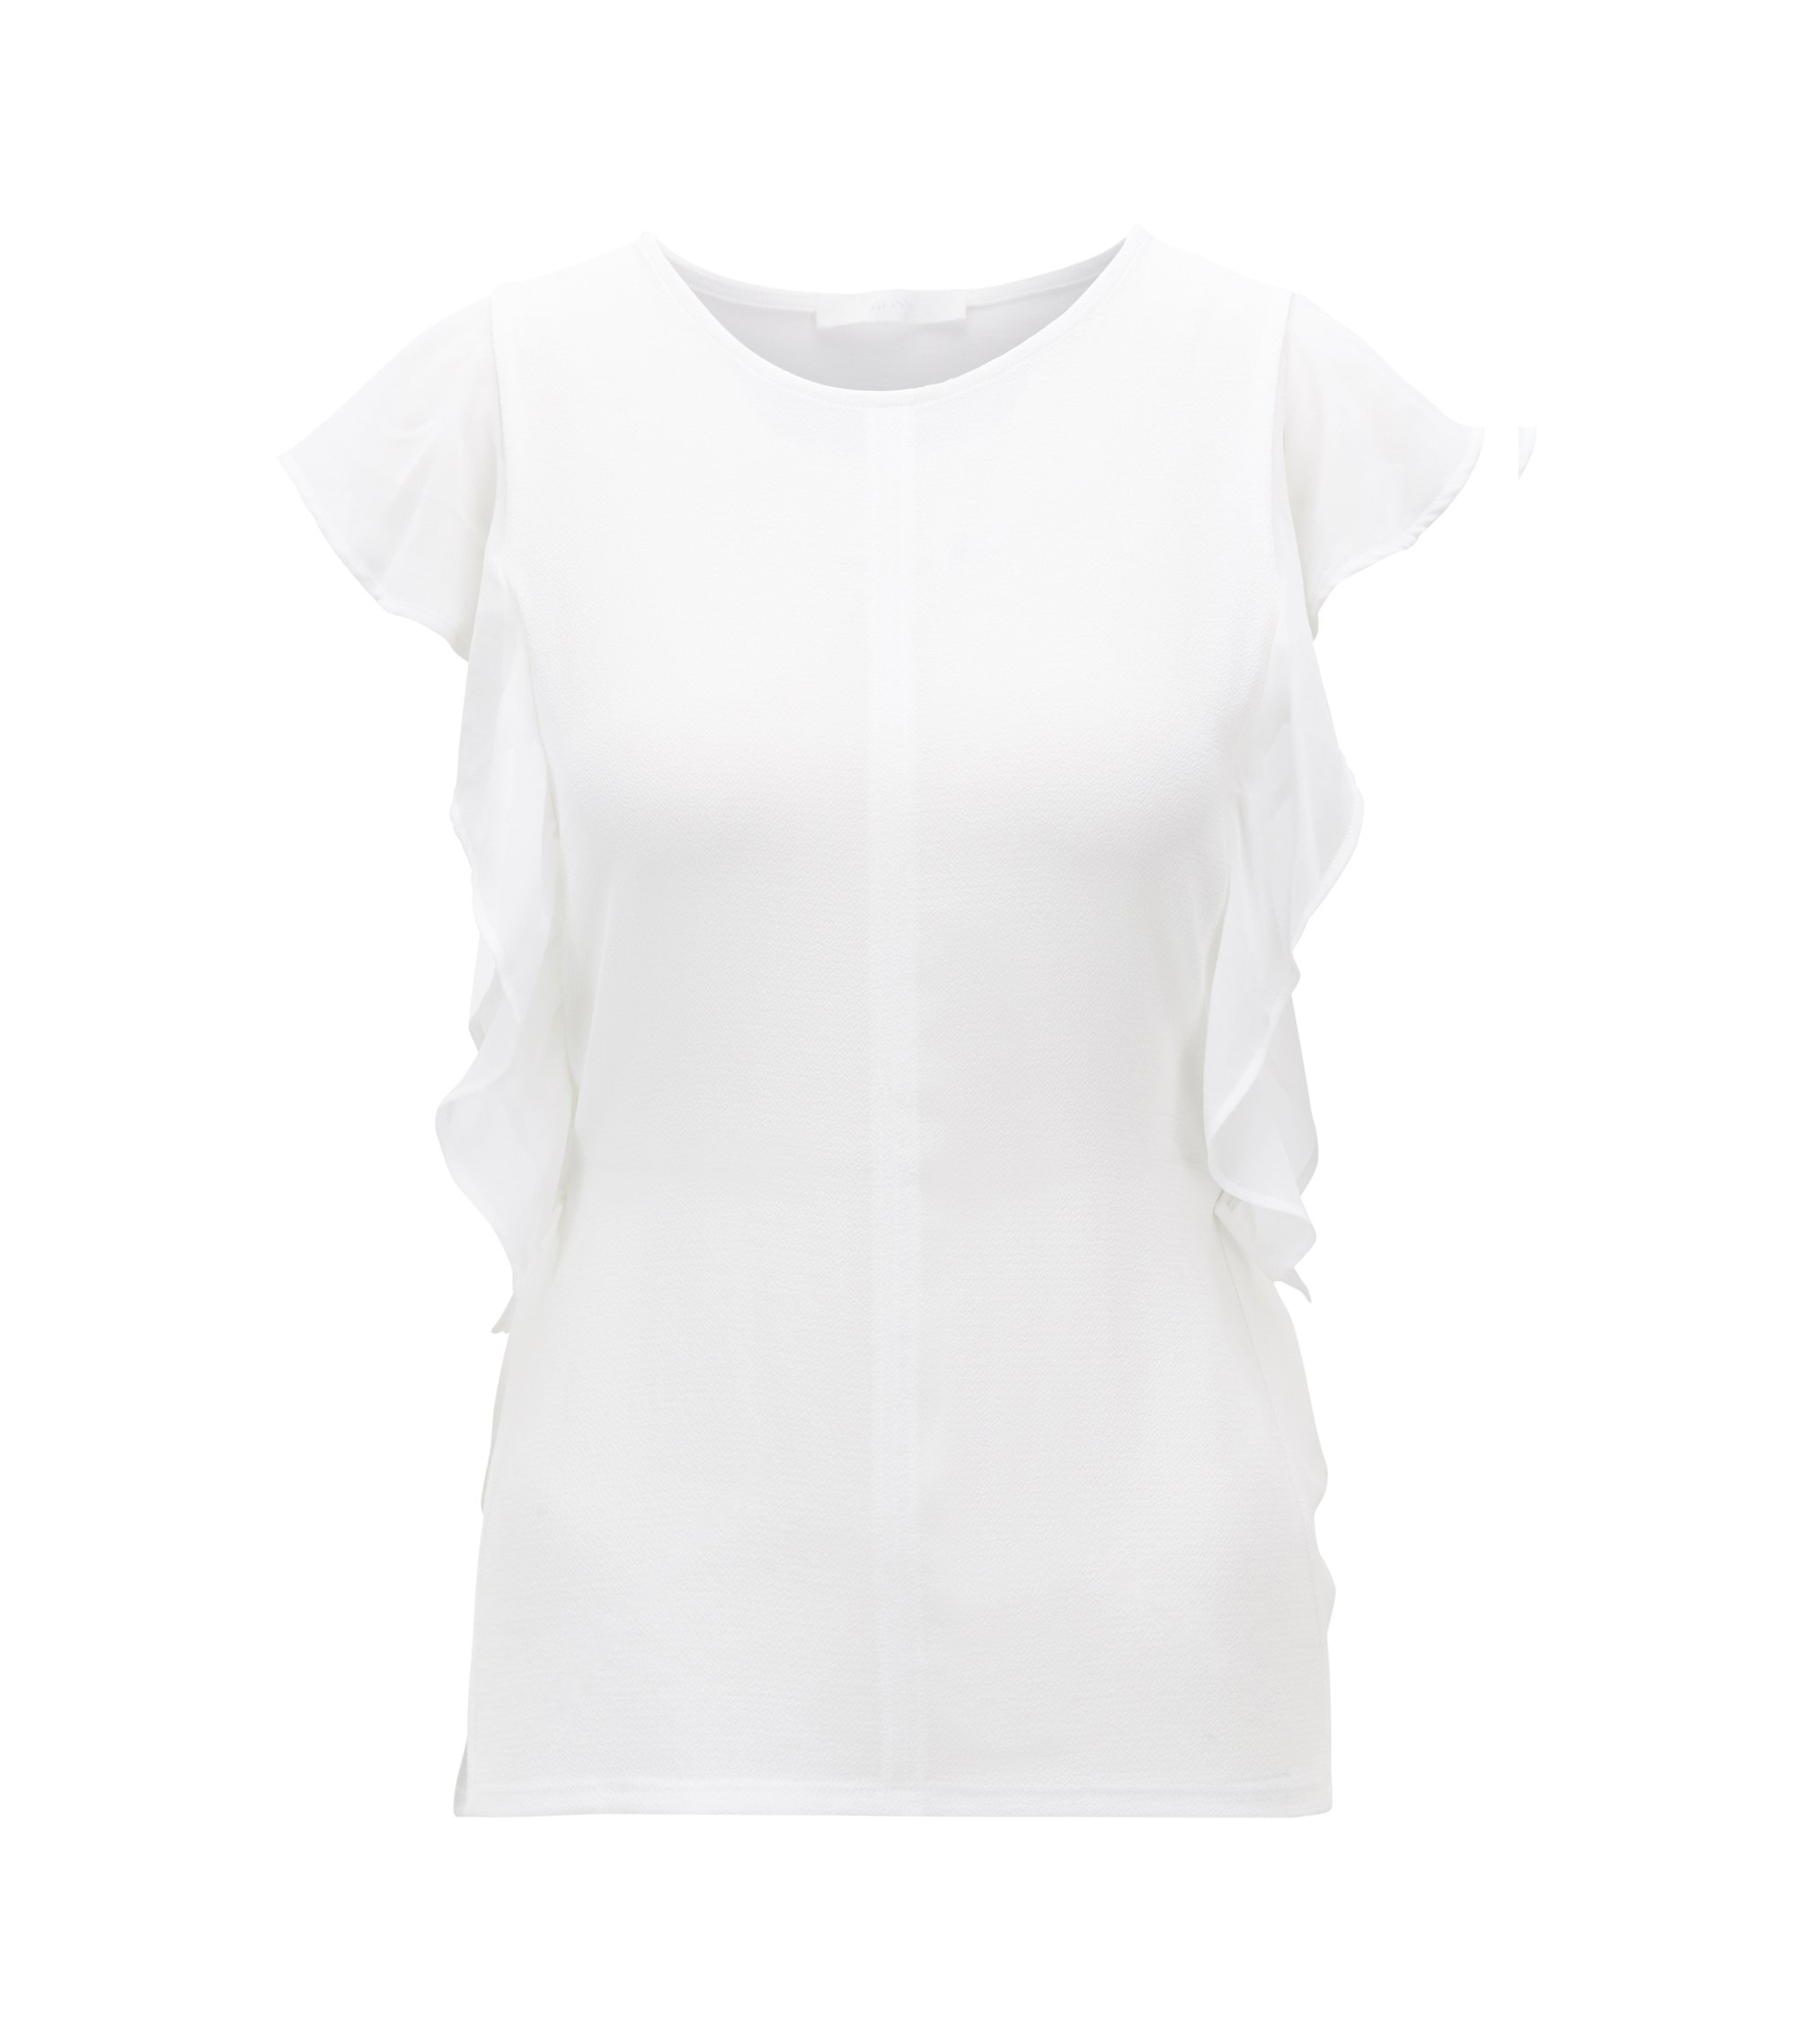 Sleeveless top with frill detail and side-seam buttons, Natural